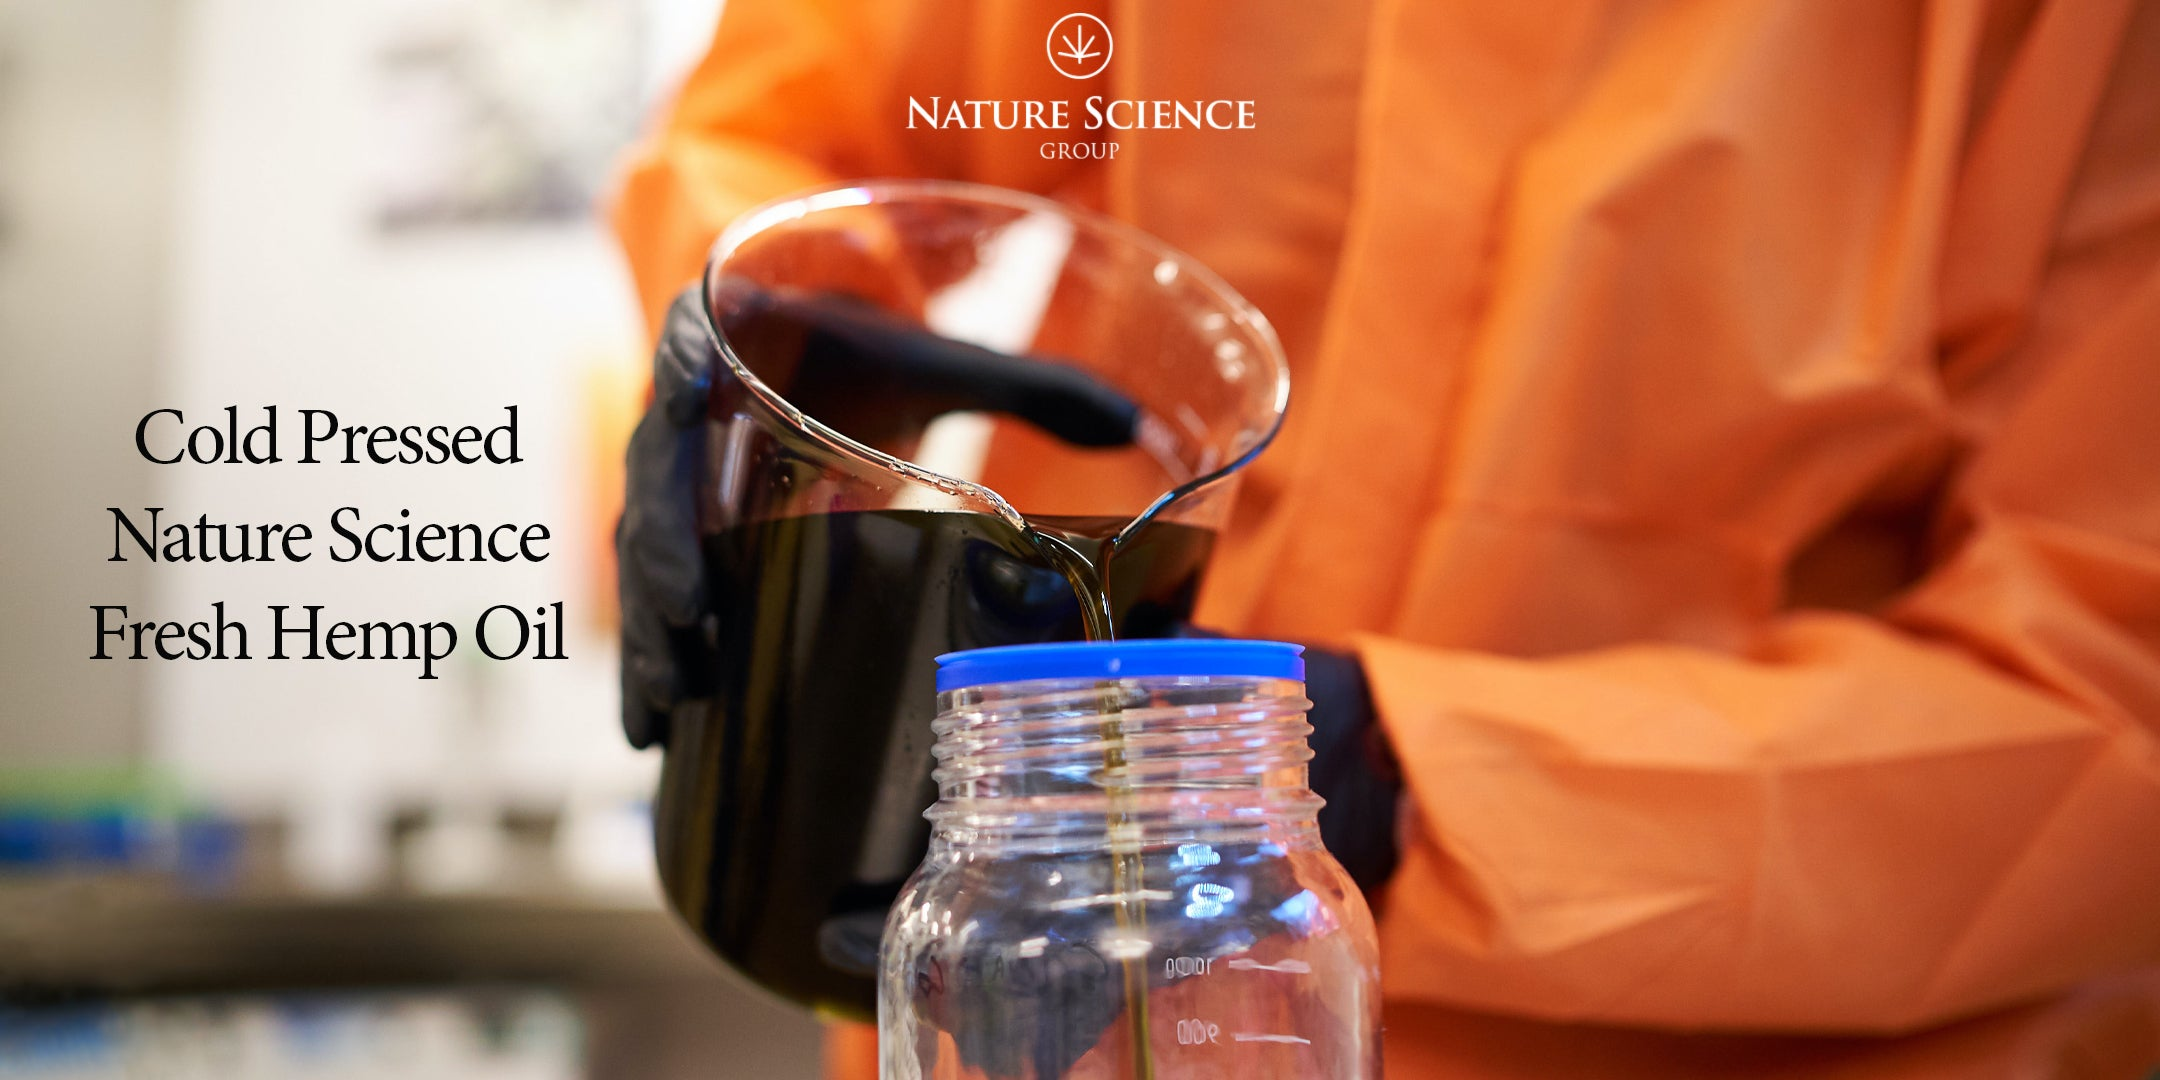 Nature Science Group - Nature Science Cold Pressed Hemp Oil